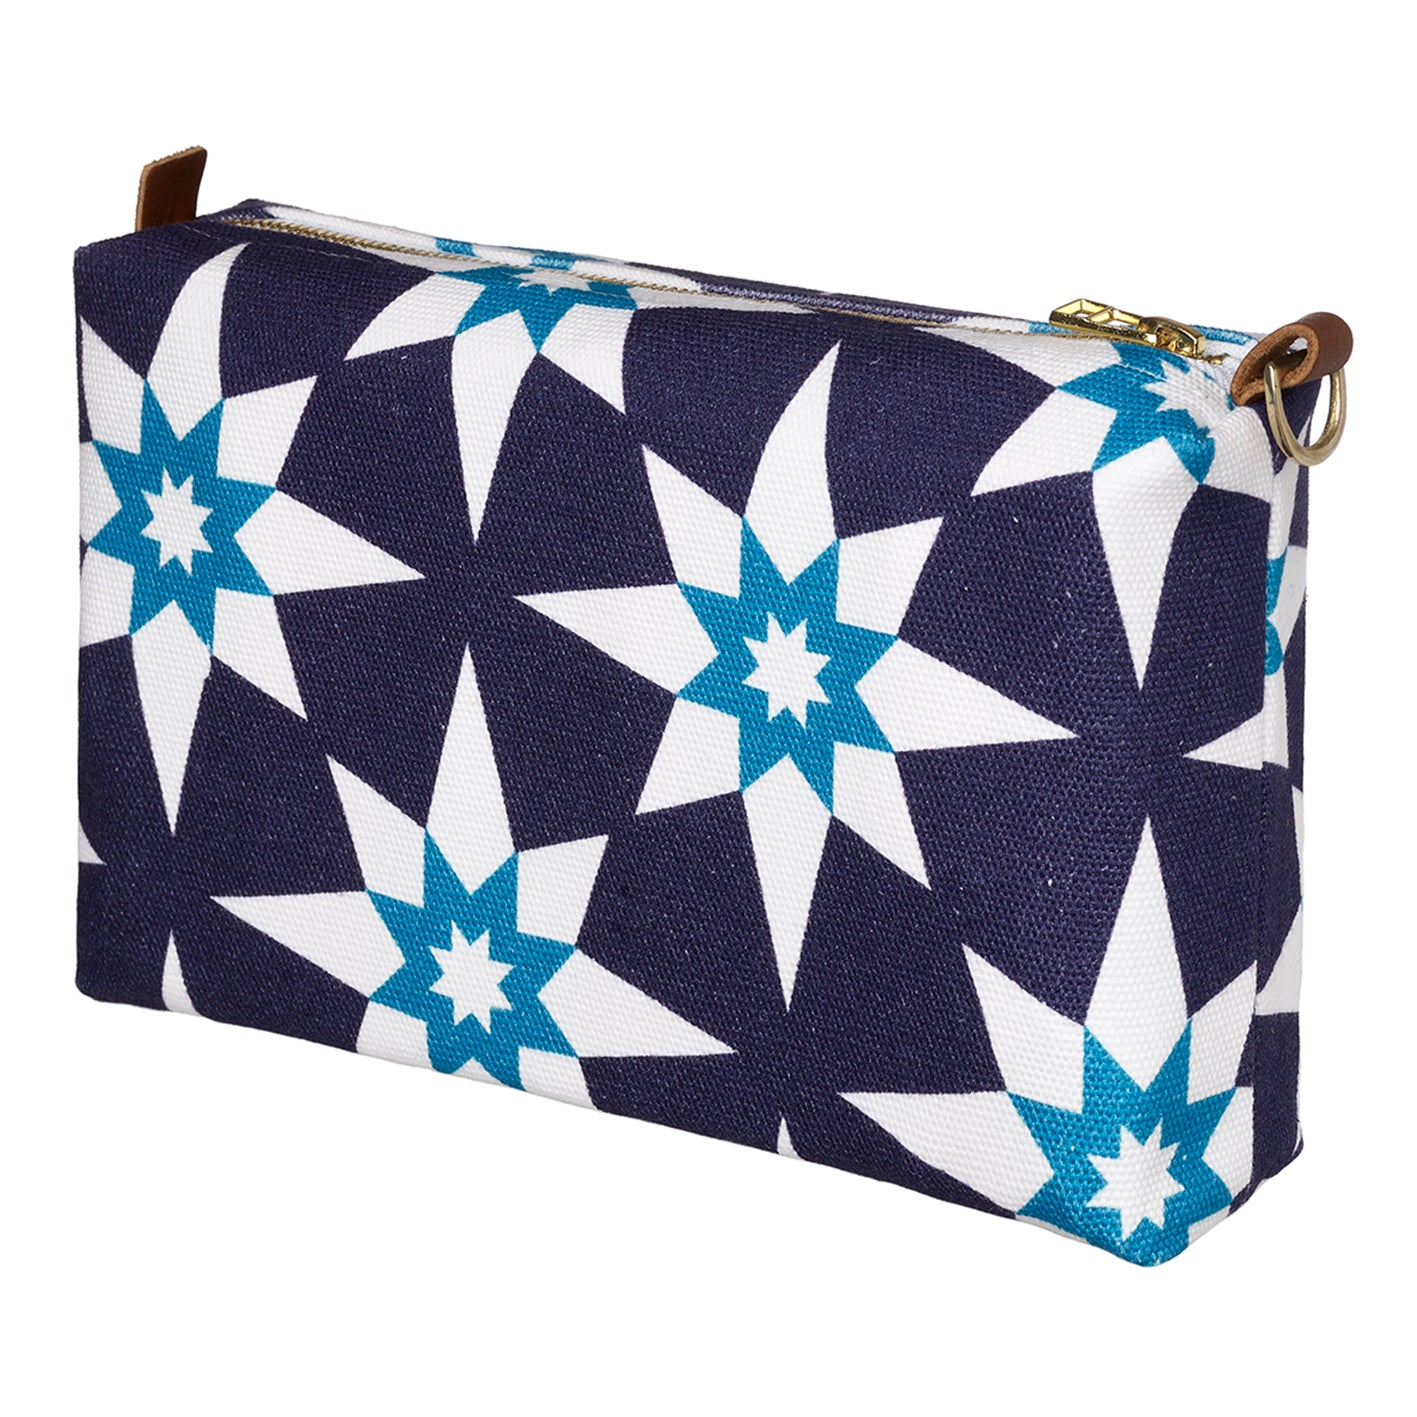 Cadiz Geometric Star Pattern Canvas Wash toiletry travel & cosmetics Bag - Aubergine Purple & Turquois ships from canada (USA)